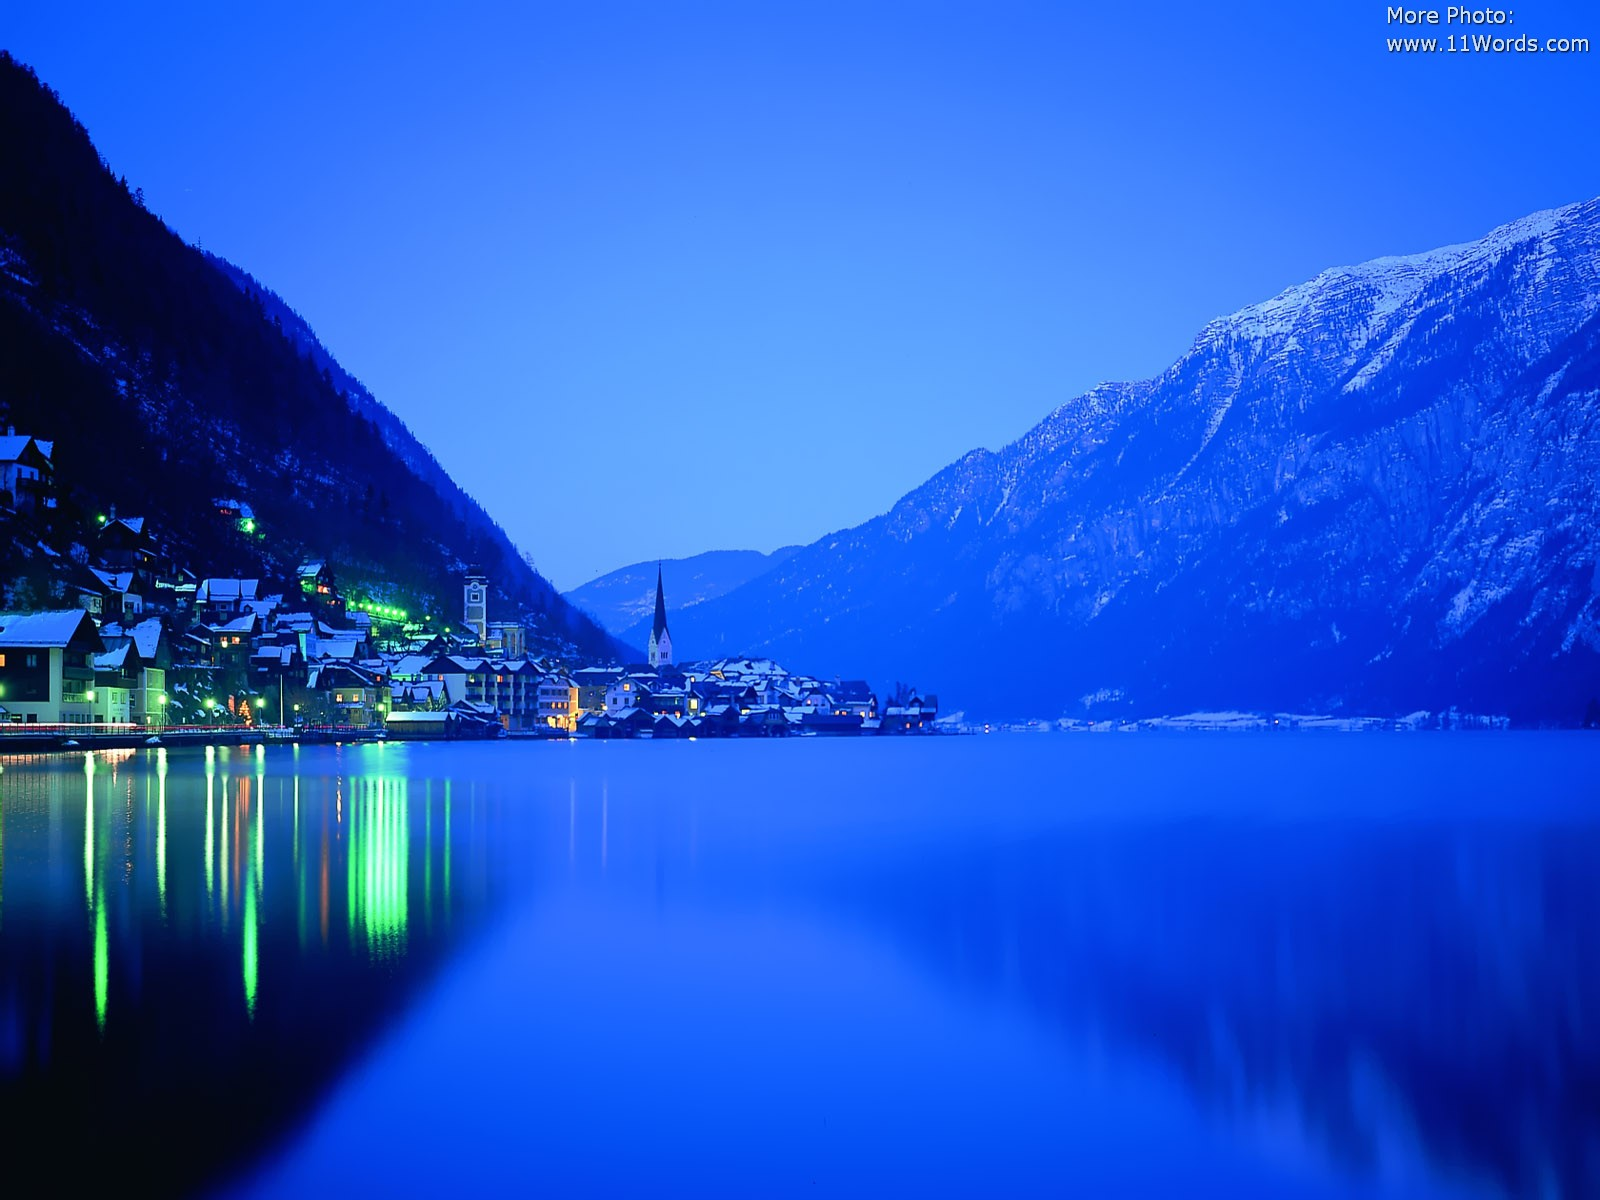 Free Wallpapers: Cities Scenes In Night Time